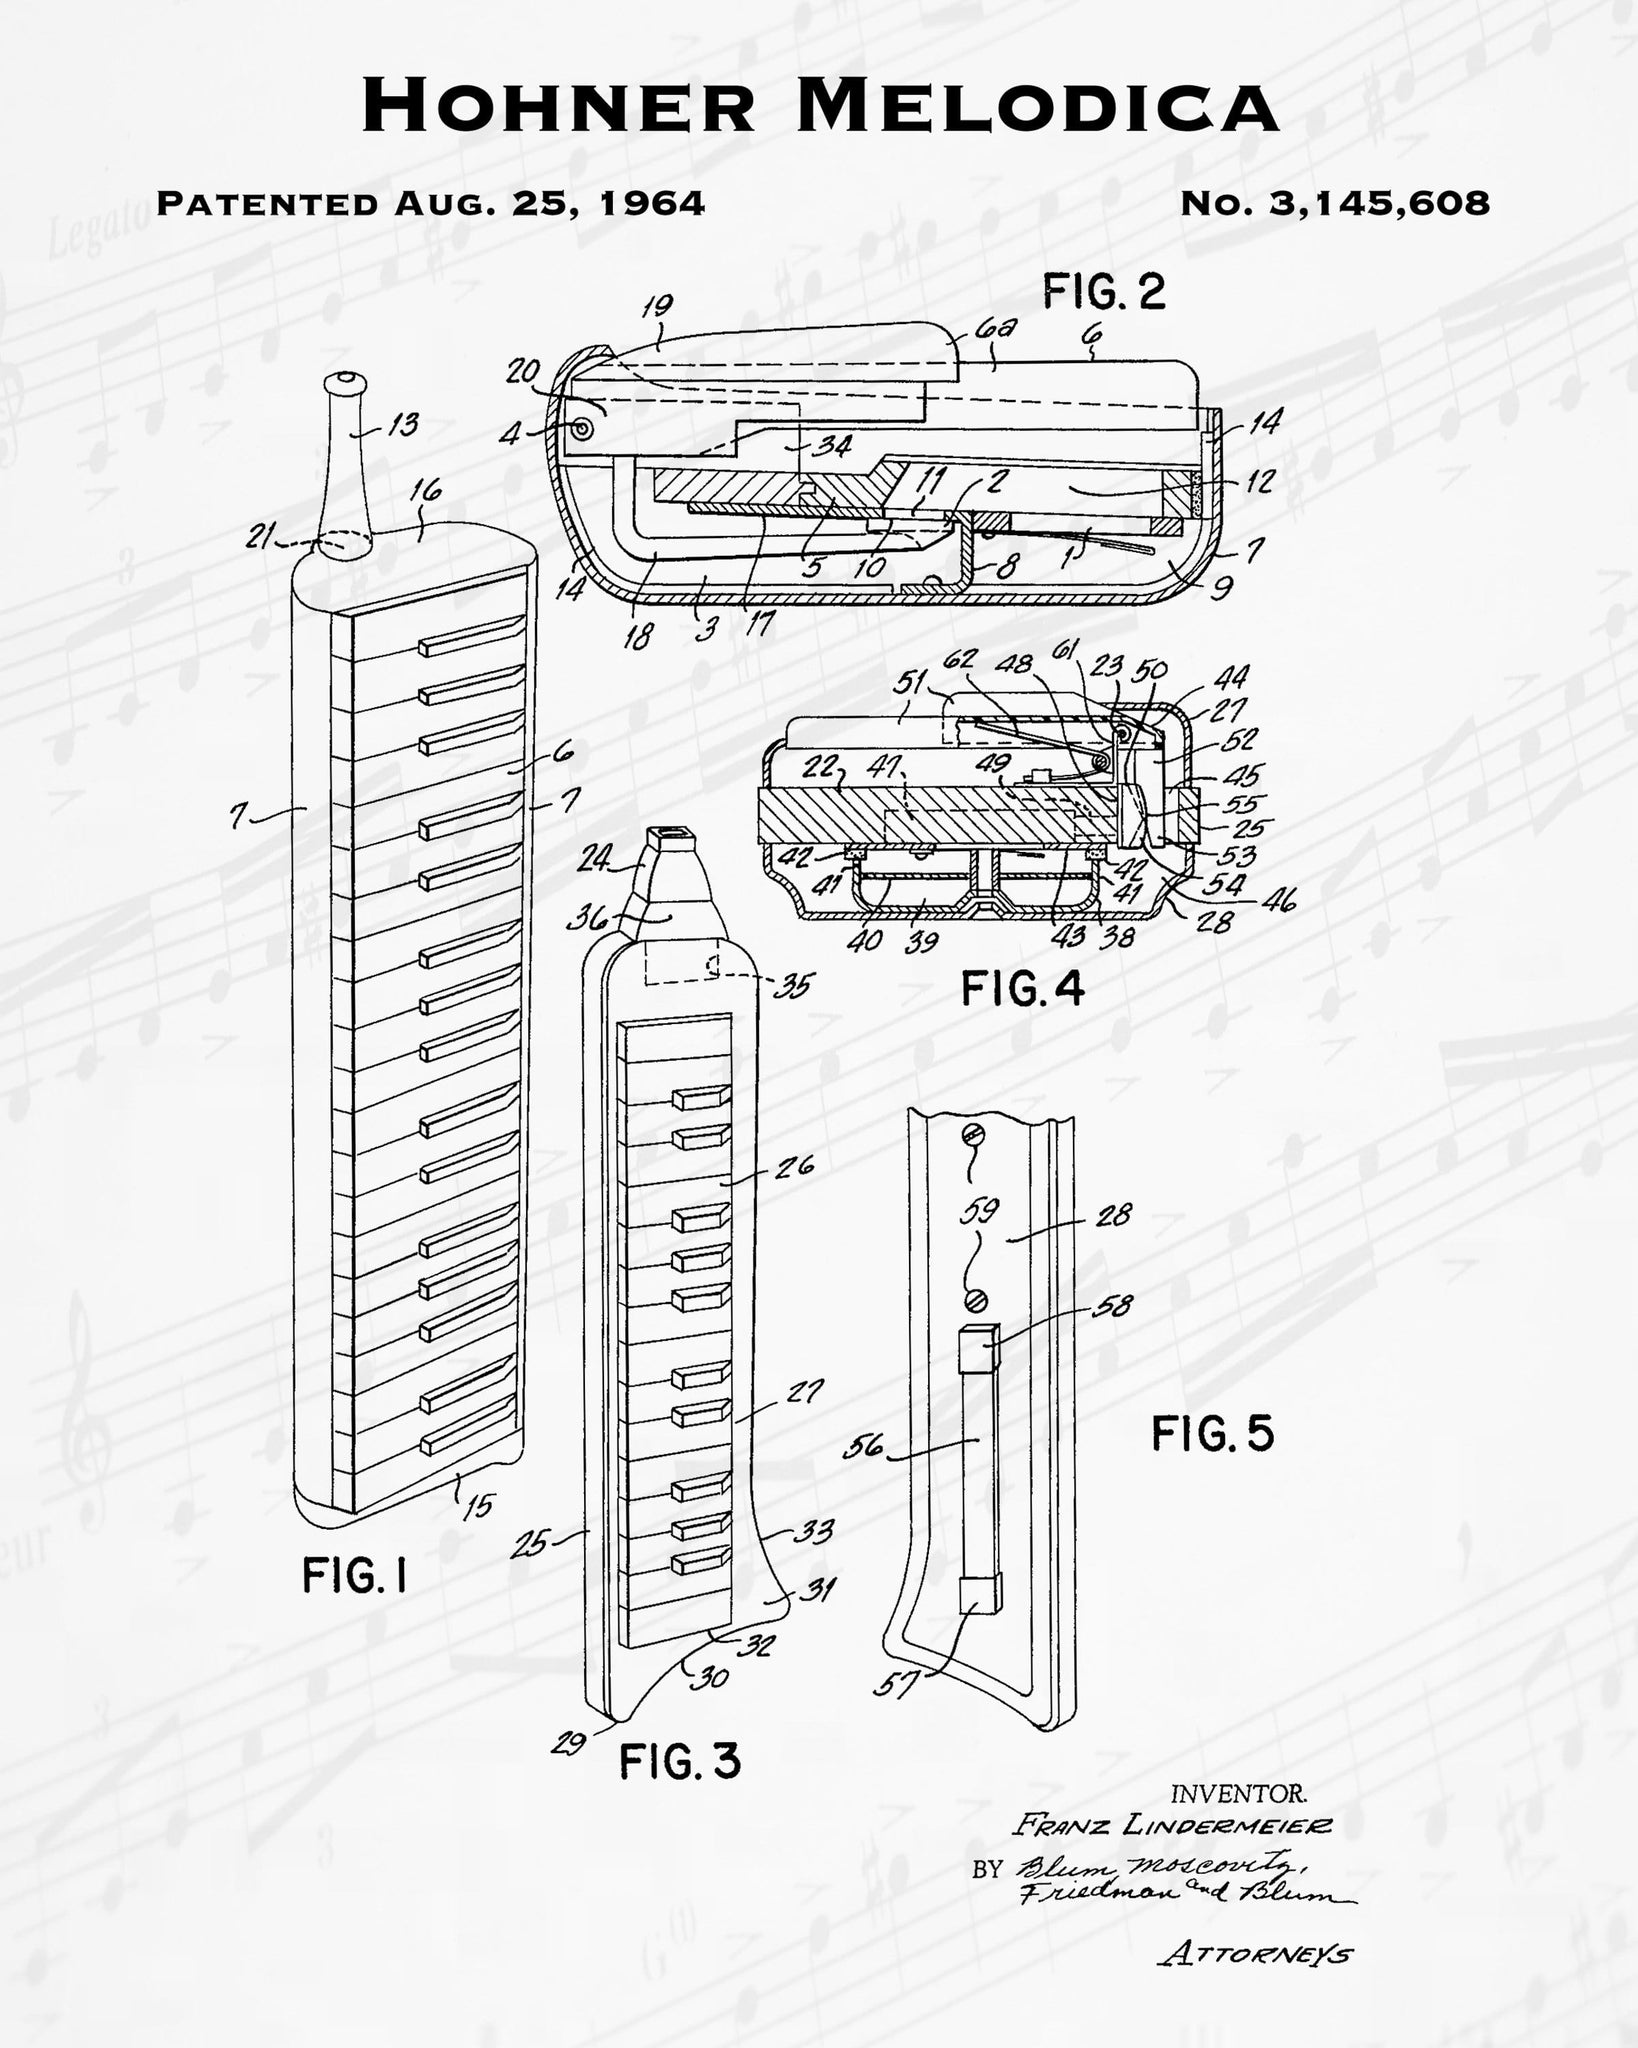 1964 Hohner Melodica Patent - 8X10 Digital Download Patent